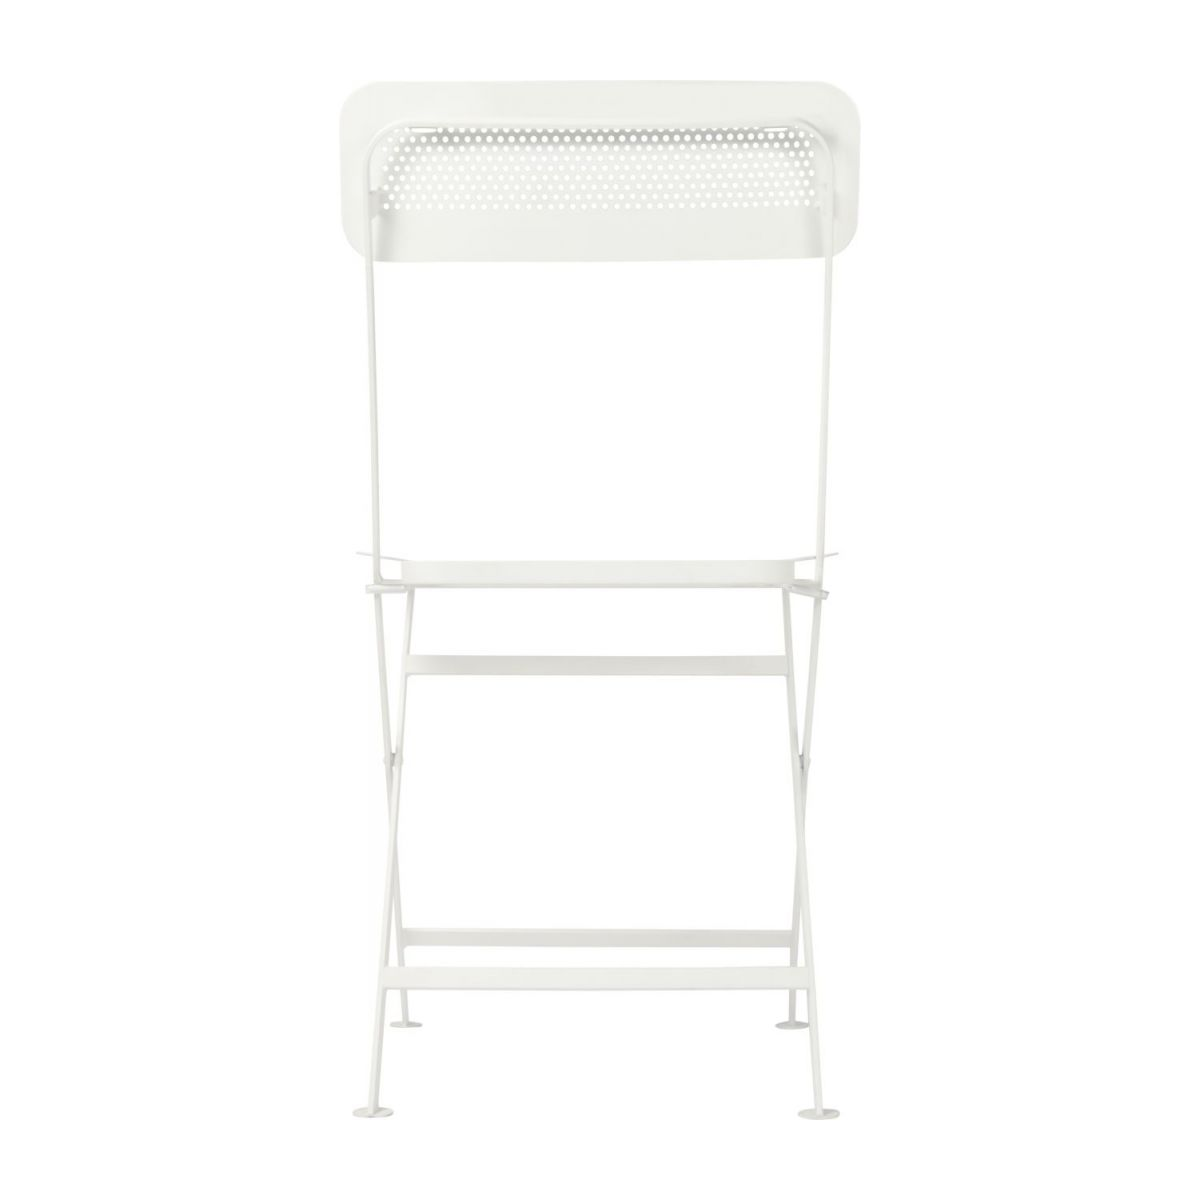 Folding chair made of metal, white n°4